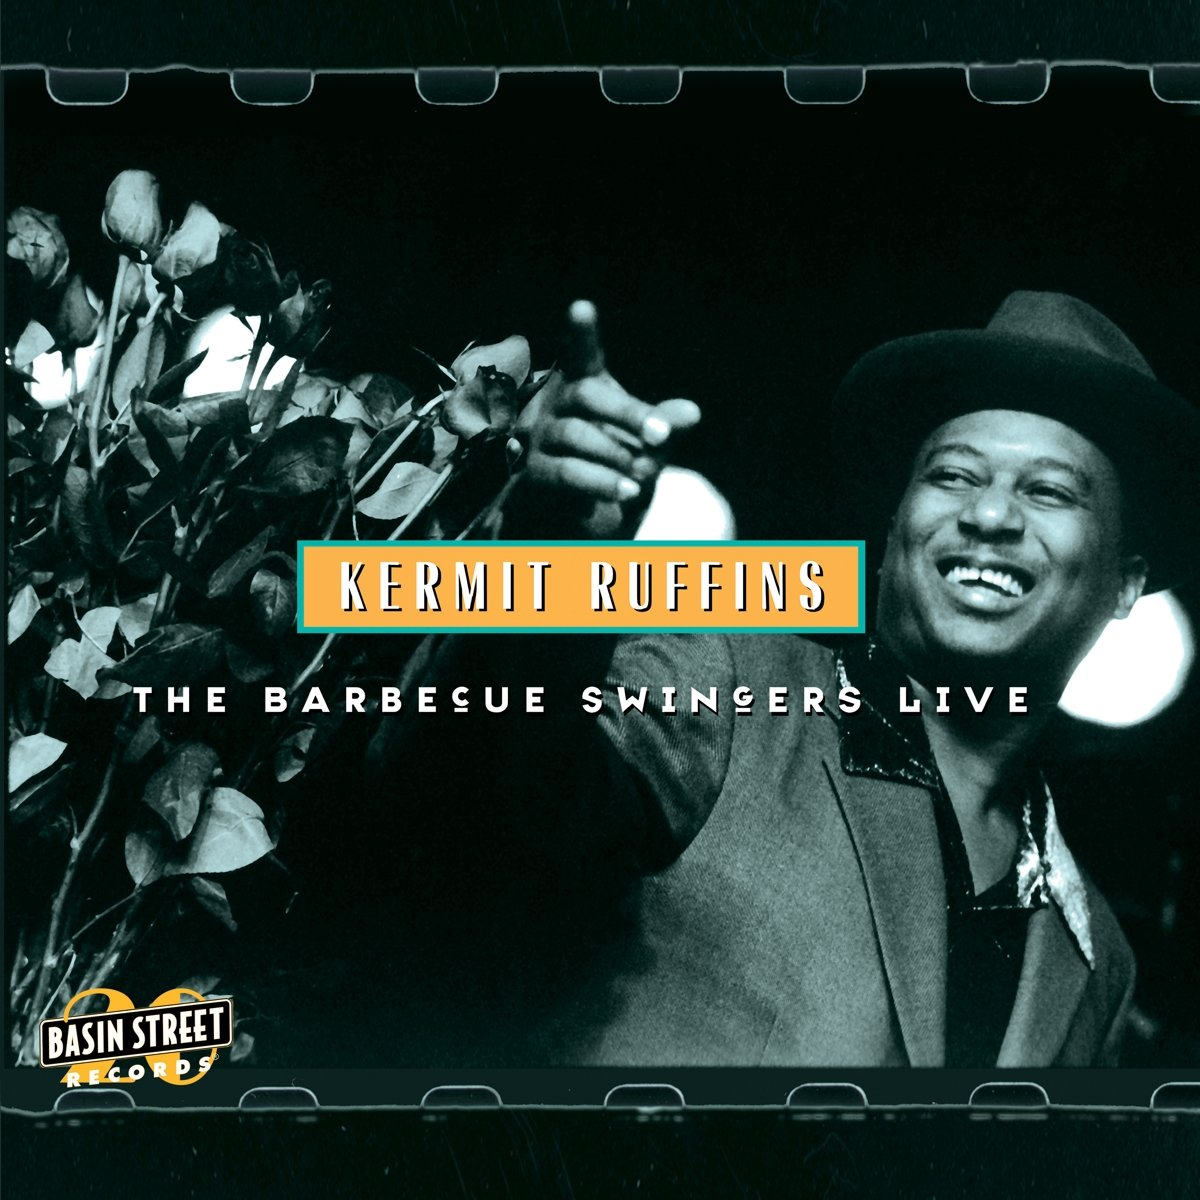 Kermit Ruffins - The Barbecue Swingers Live (LP Vinyl)